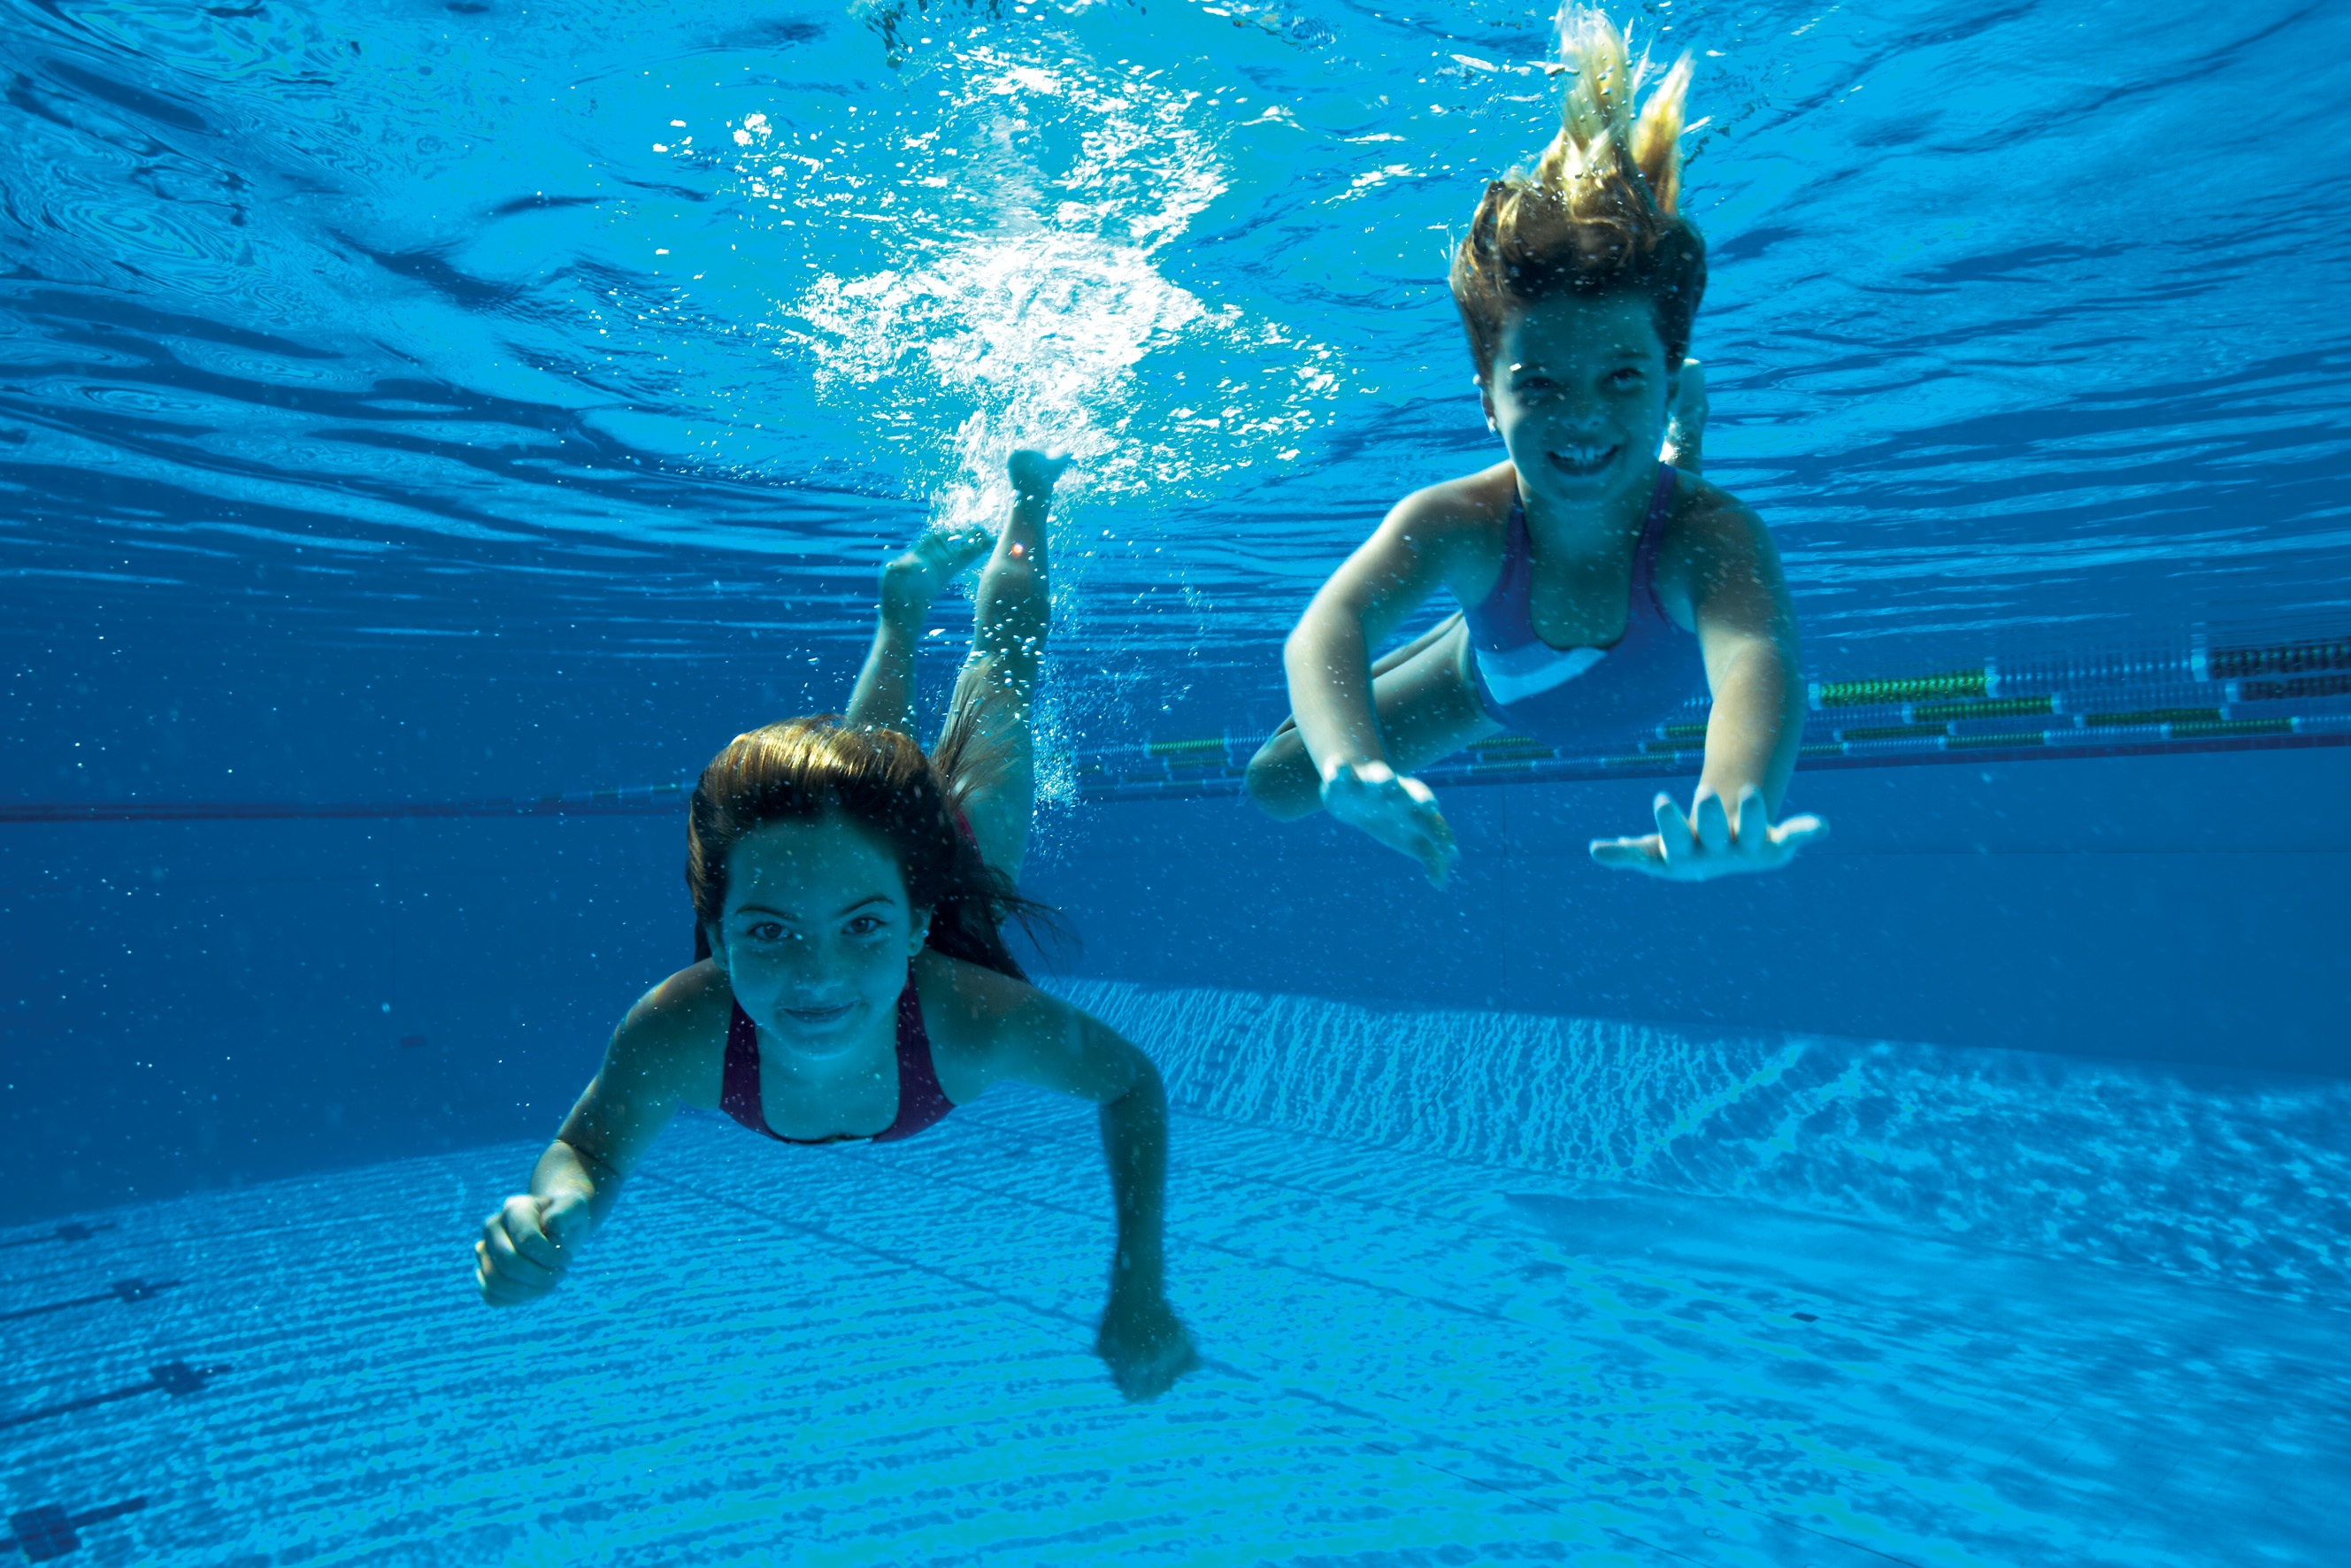 The Aquatic Youth Club will take place every Saturday from October 15th